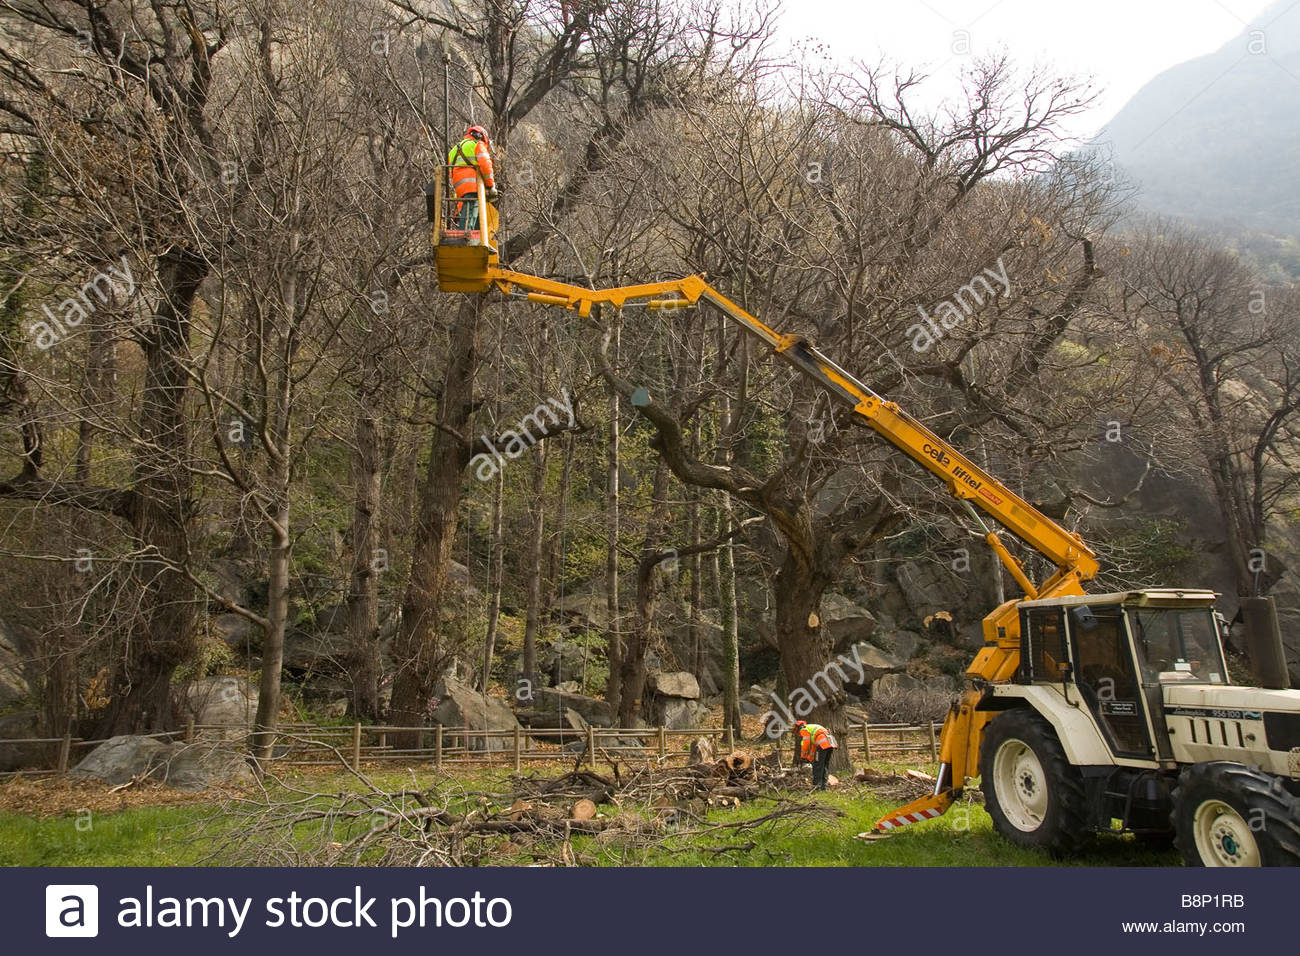 Europe Italy Valle D Aosta Arnad Chestnut Tree Squad Of The